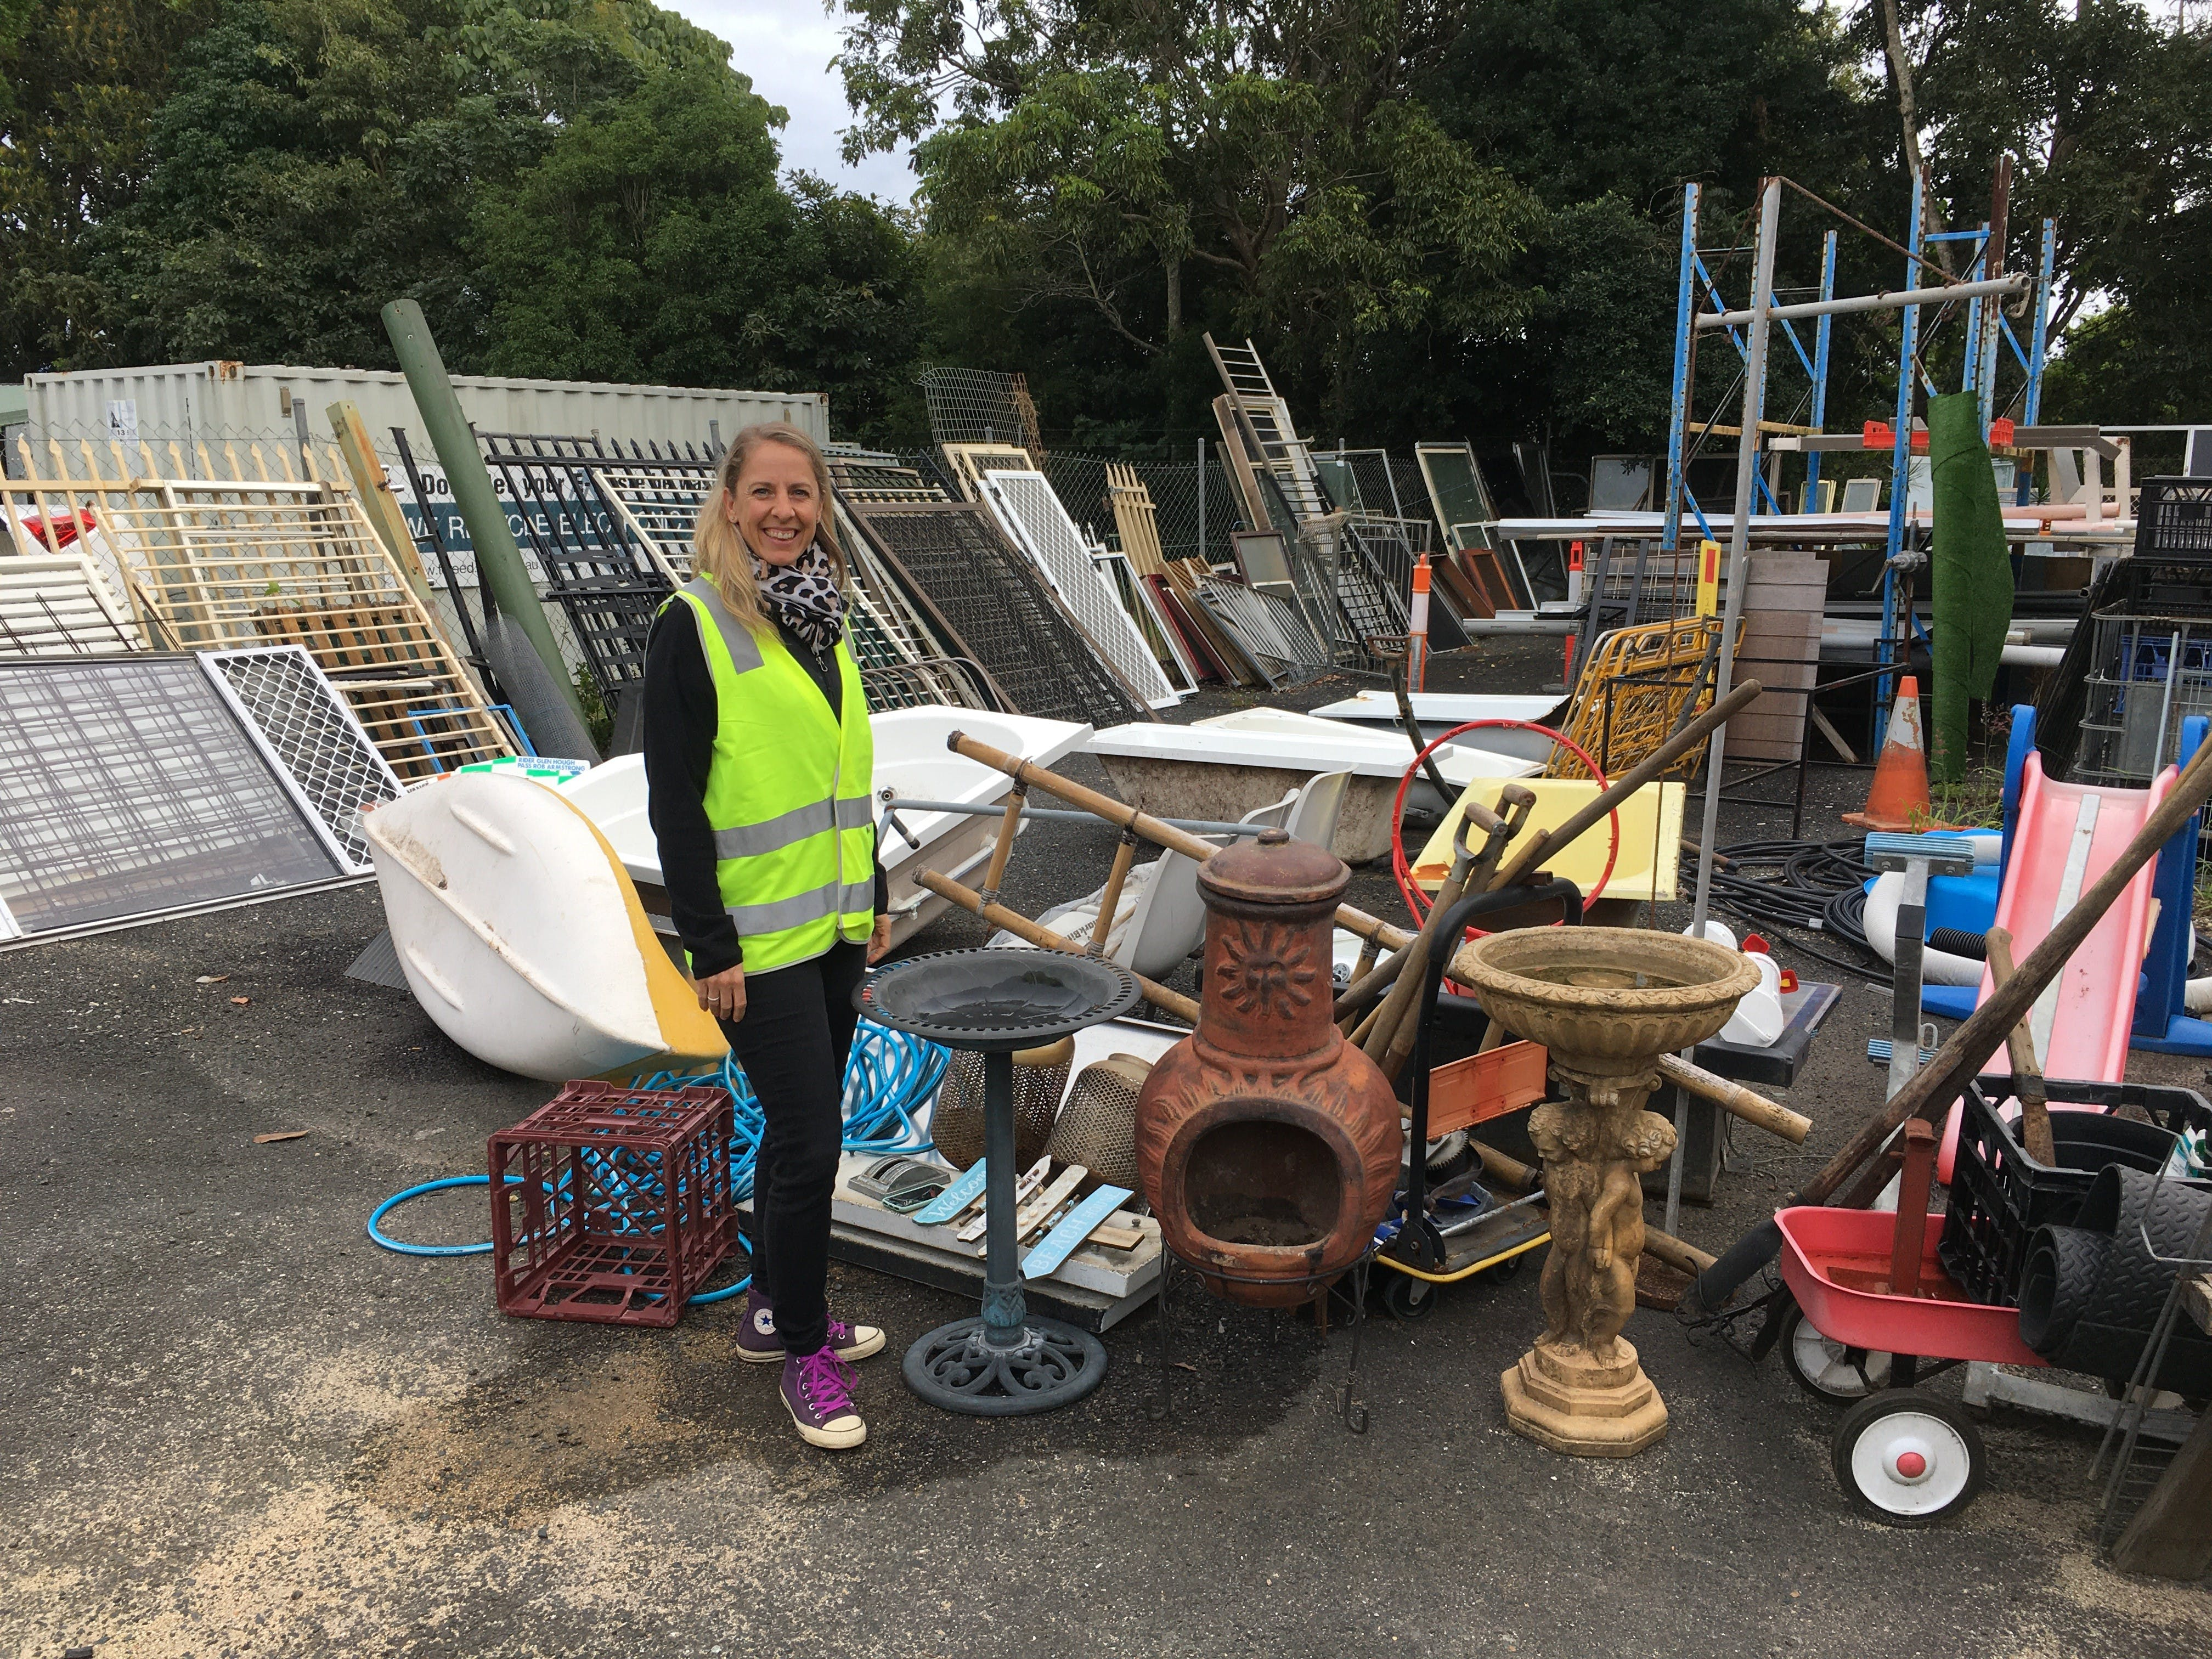 Council's Waste Education Officer Tarra Martel at the Tip Shop with items that have been recovered from ending up in landfill